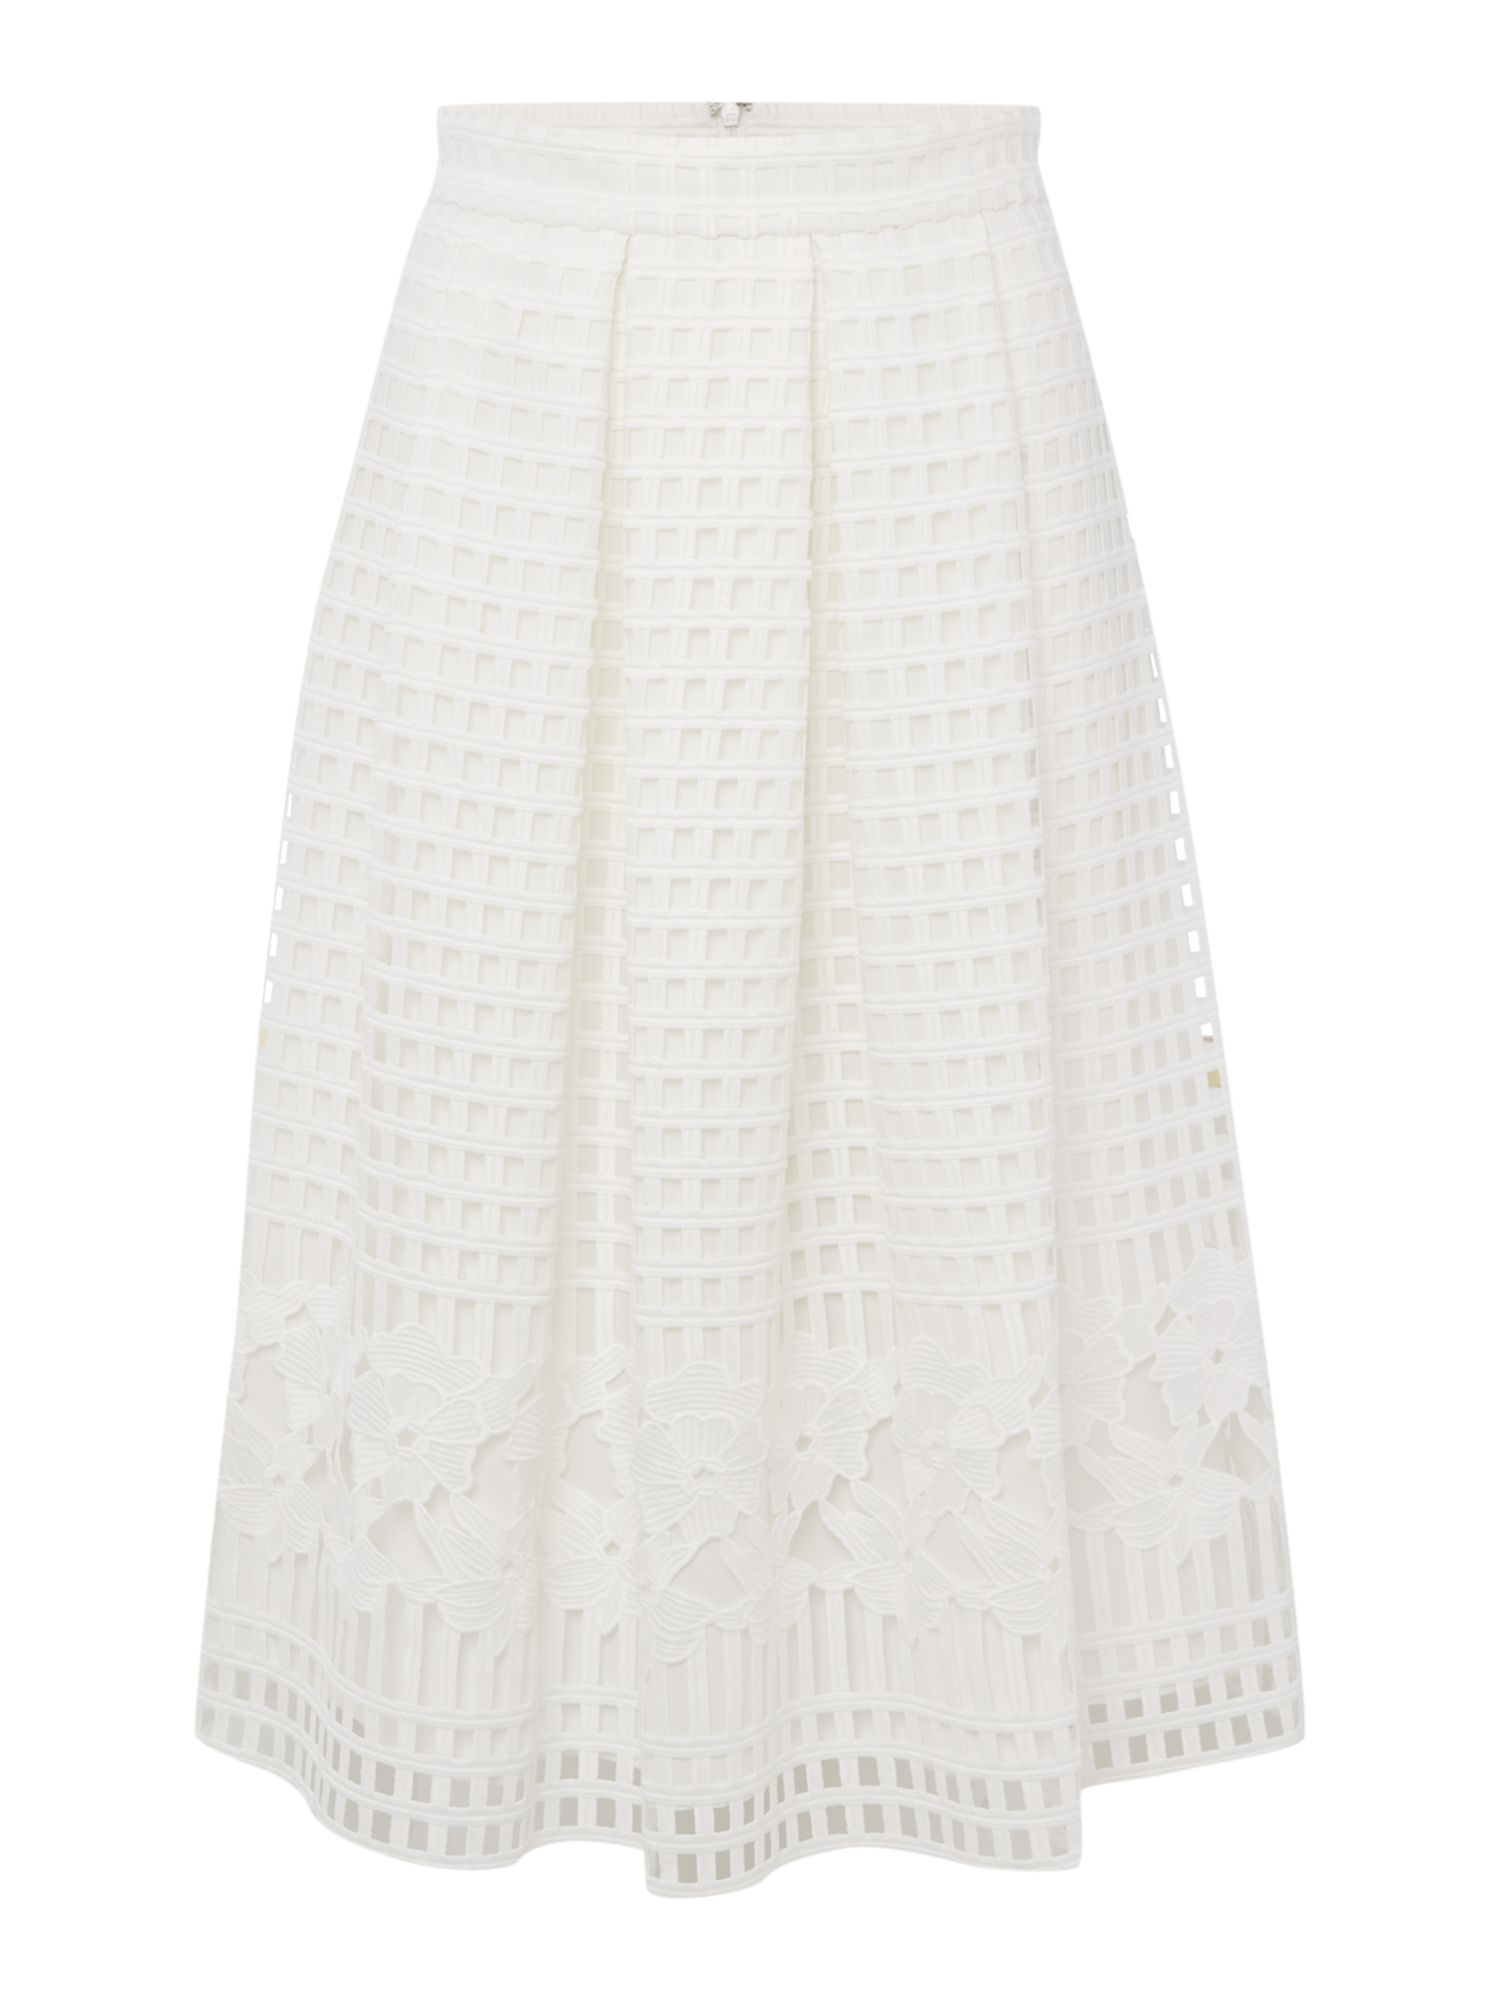 Marella Cheer open woven floral skirt, White